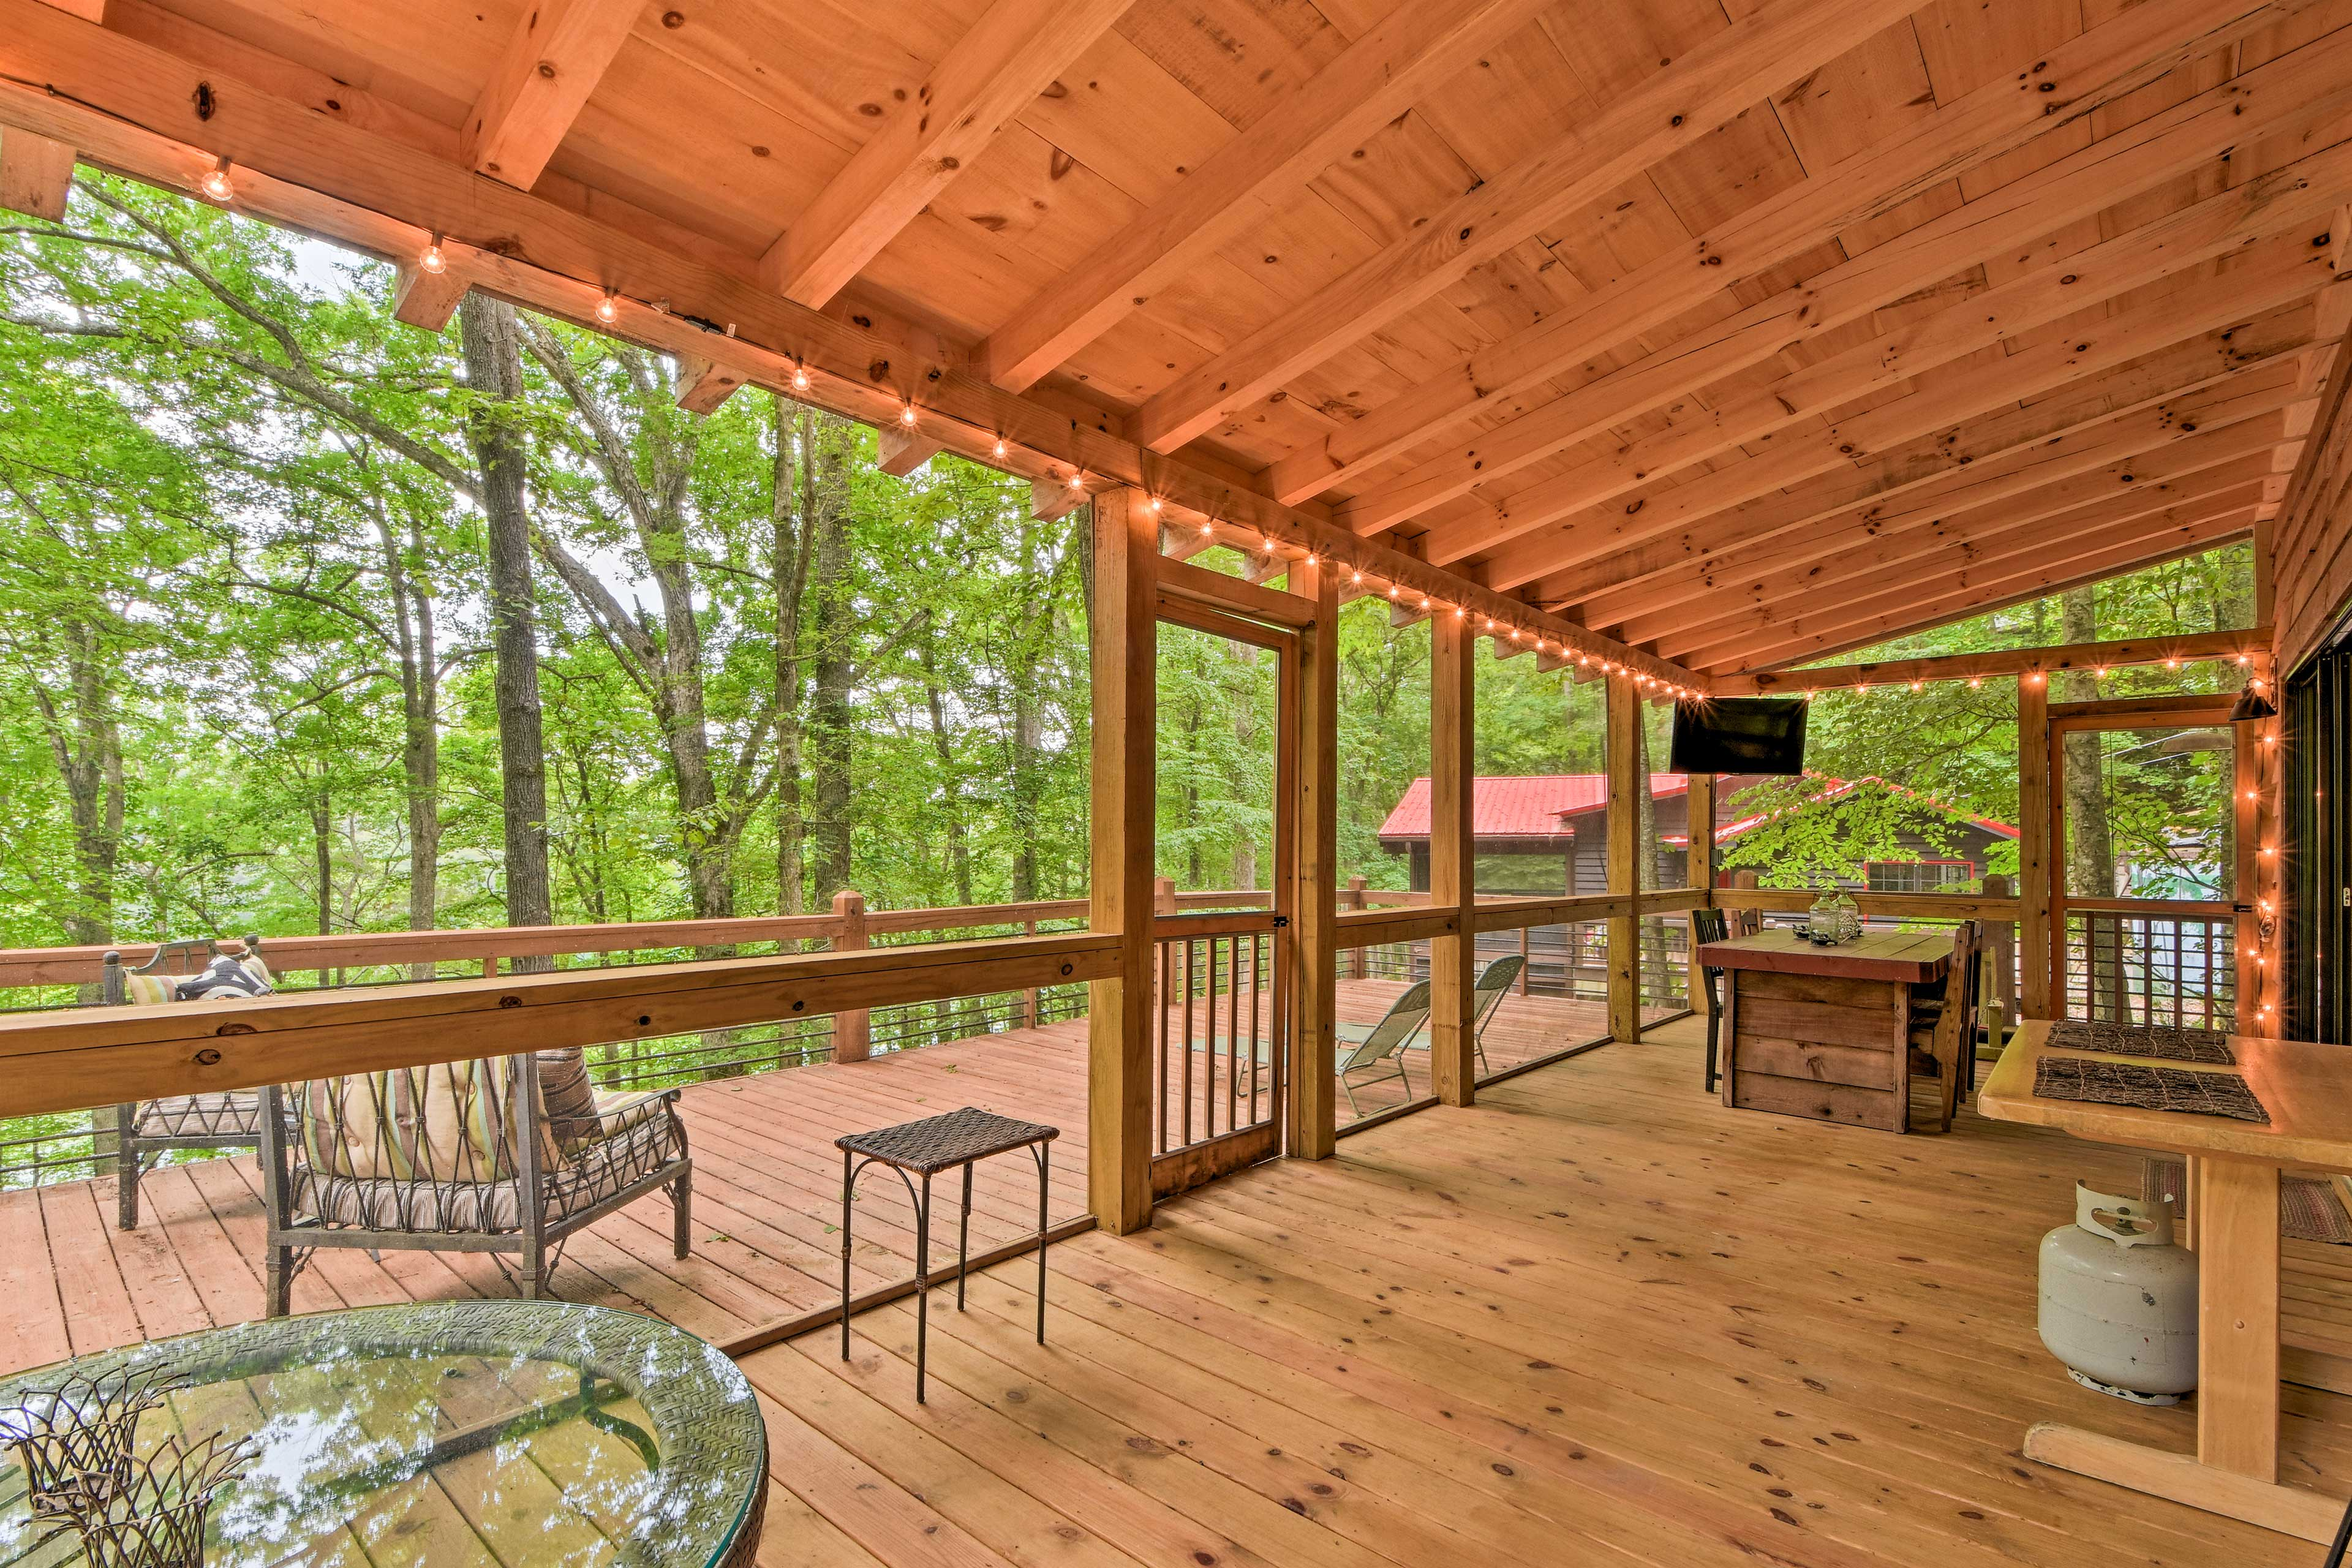 The screened porch boasts a flat-screen TV, hanging lights, and dining for 6.